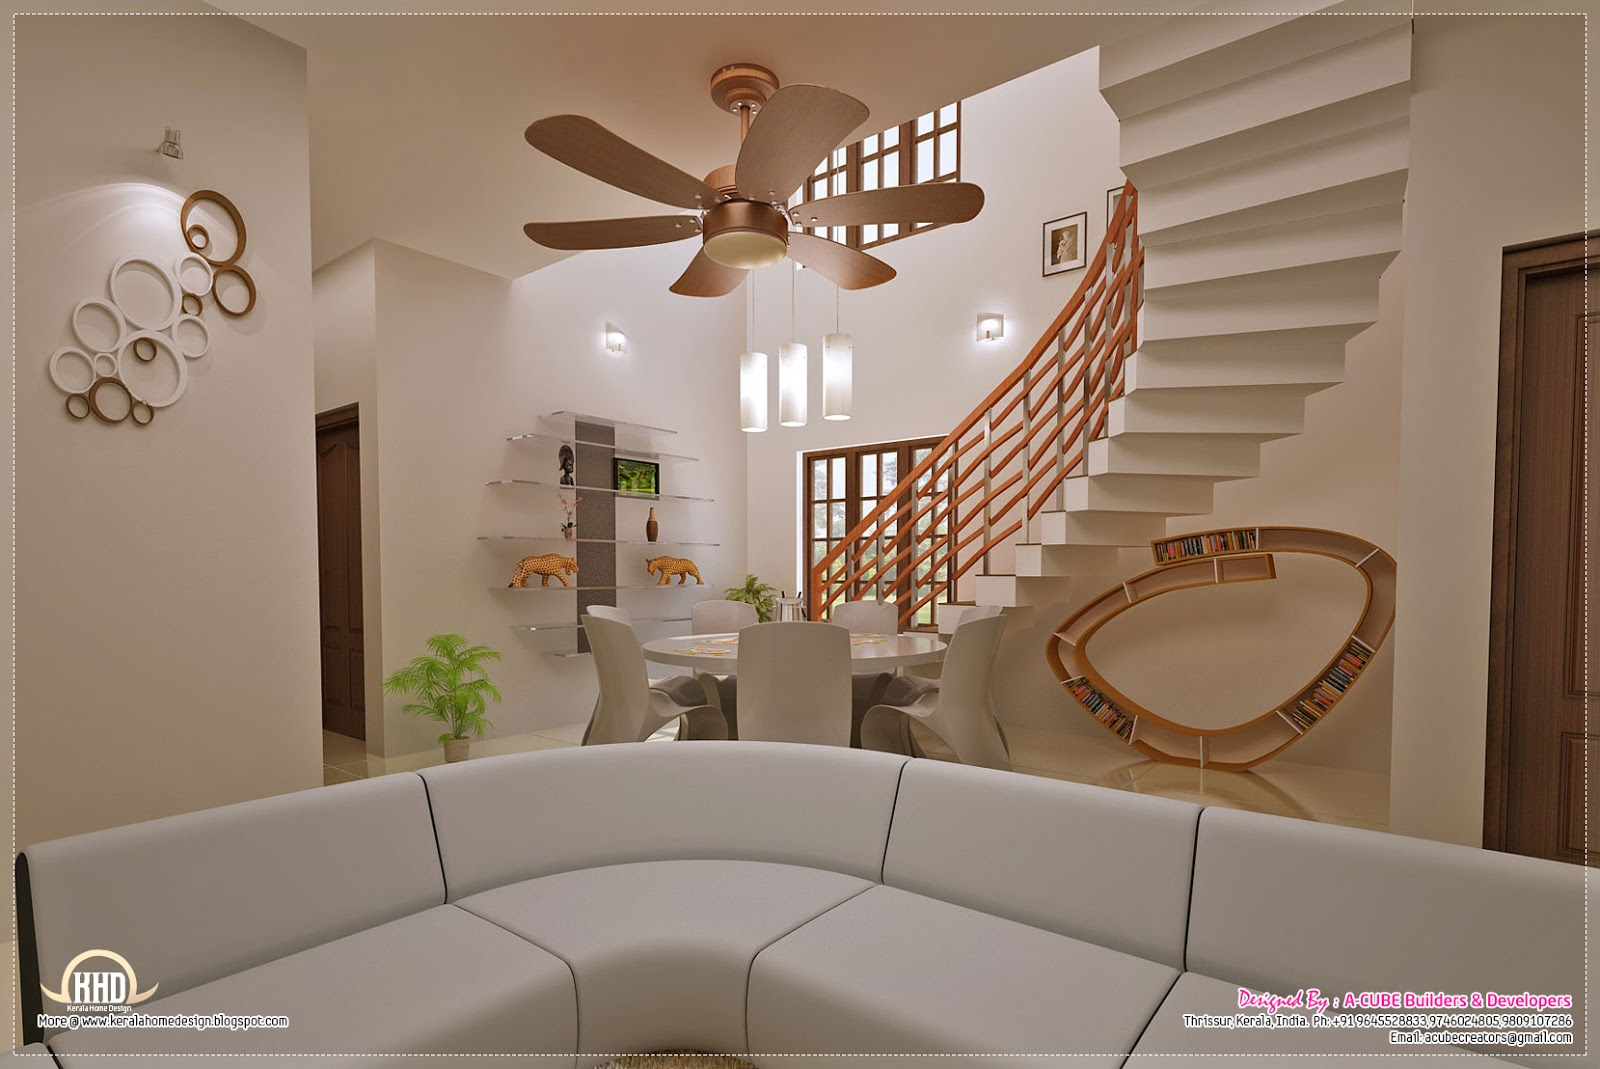 Awesome interior decoration ideas home kerala plans for Beautiful houses and interior designs